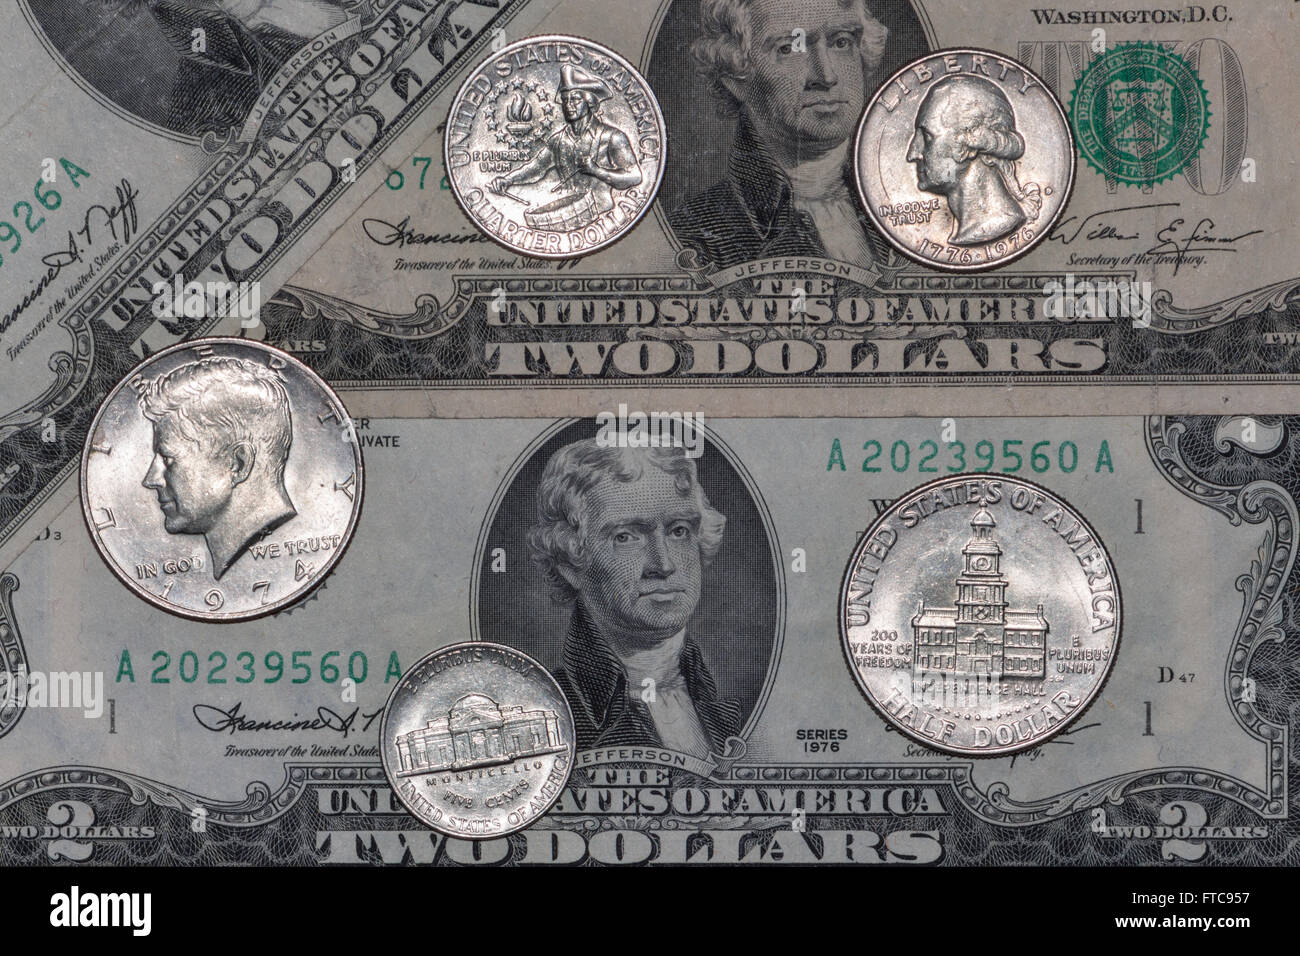 US Mint coinage and bank notes from bicentennial 1976 - Stock Image